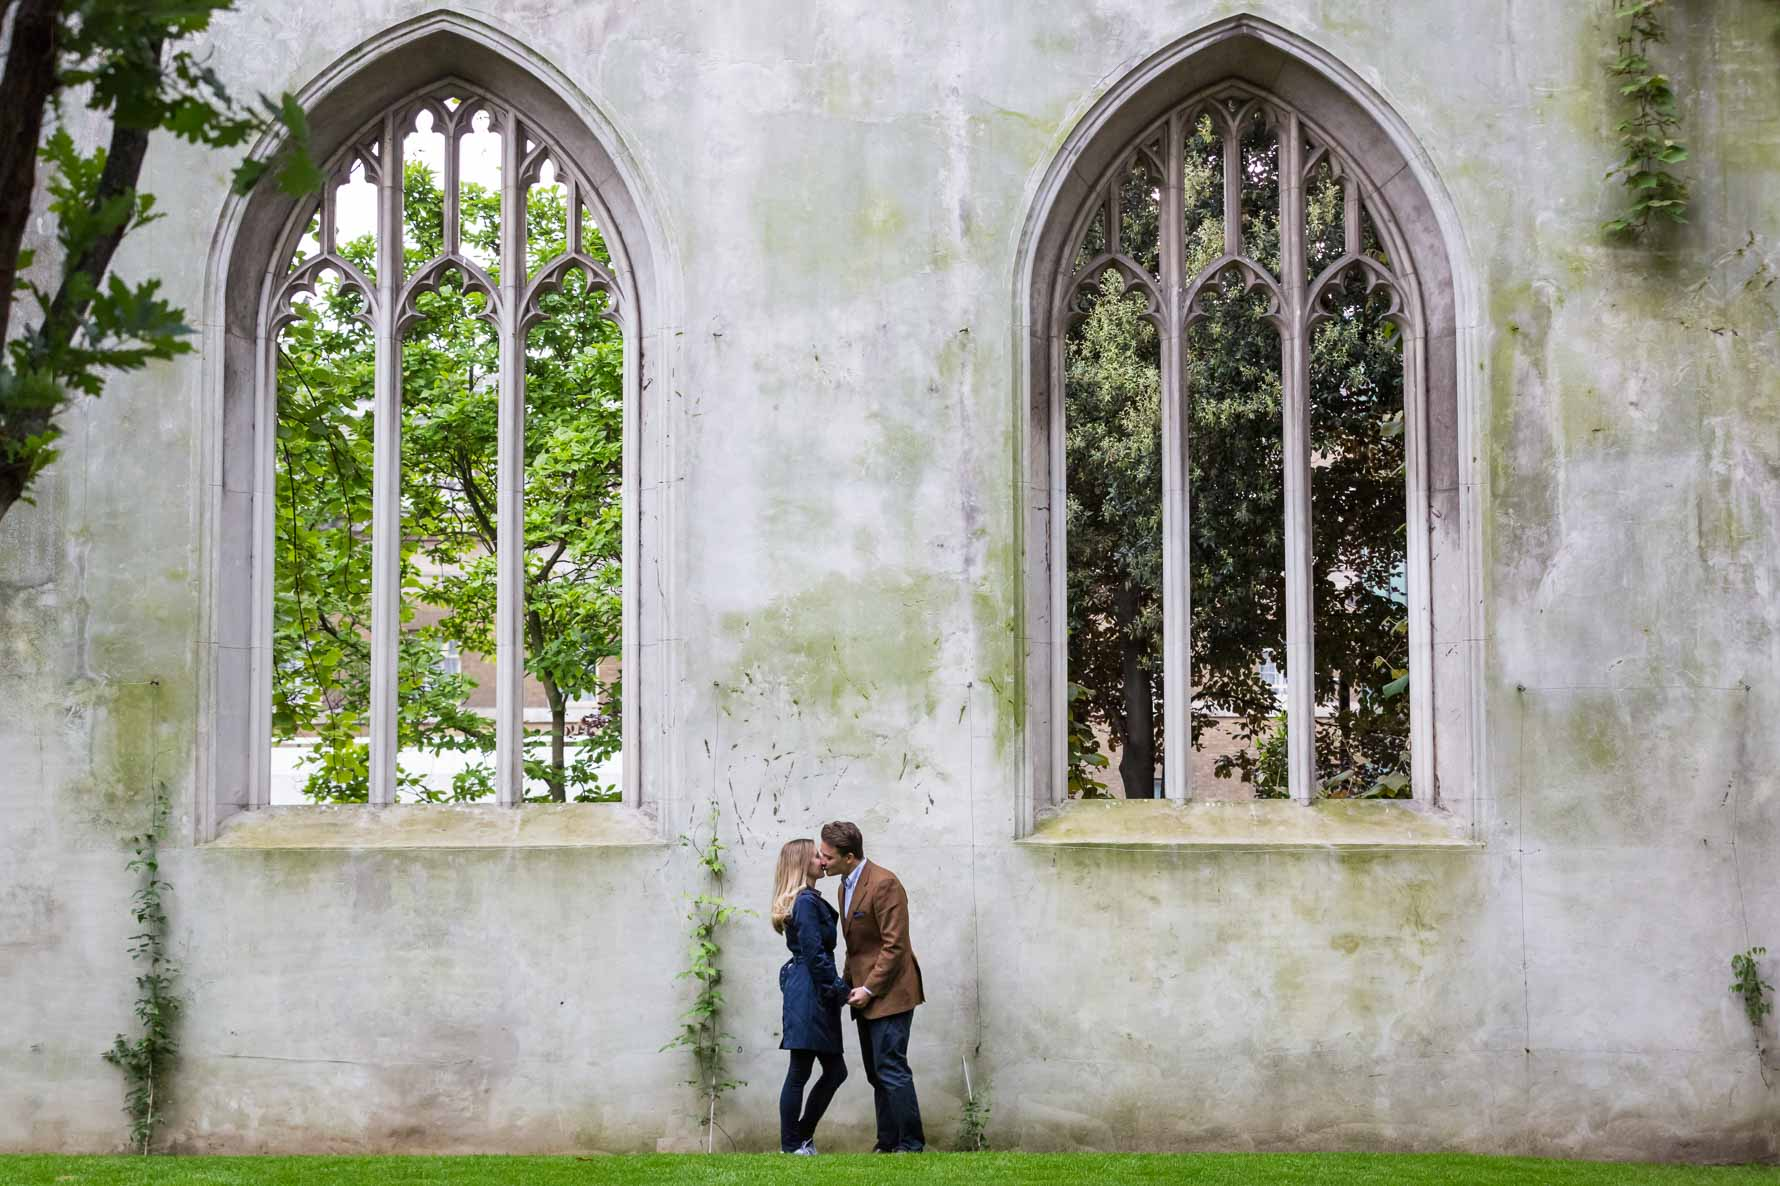 Engagement photoshoot in St Dunstan-in-the-East